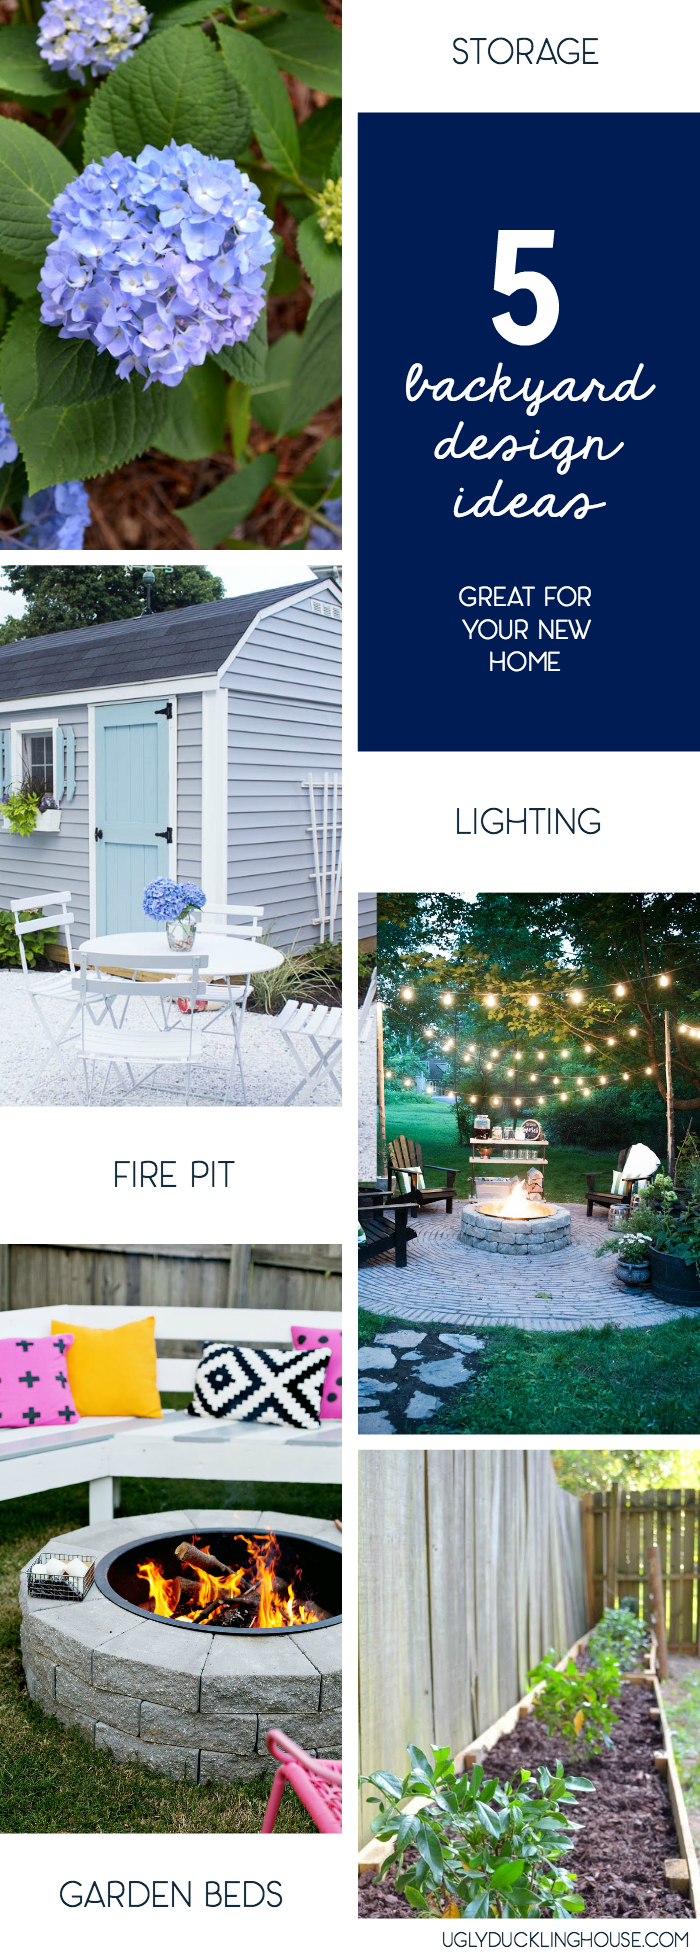 5 backyard ideas great for your new home